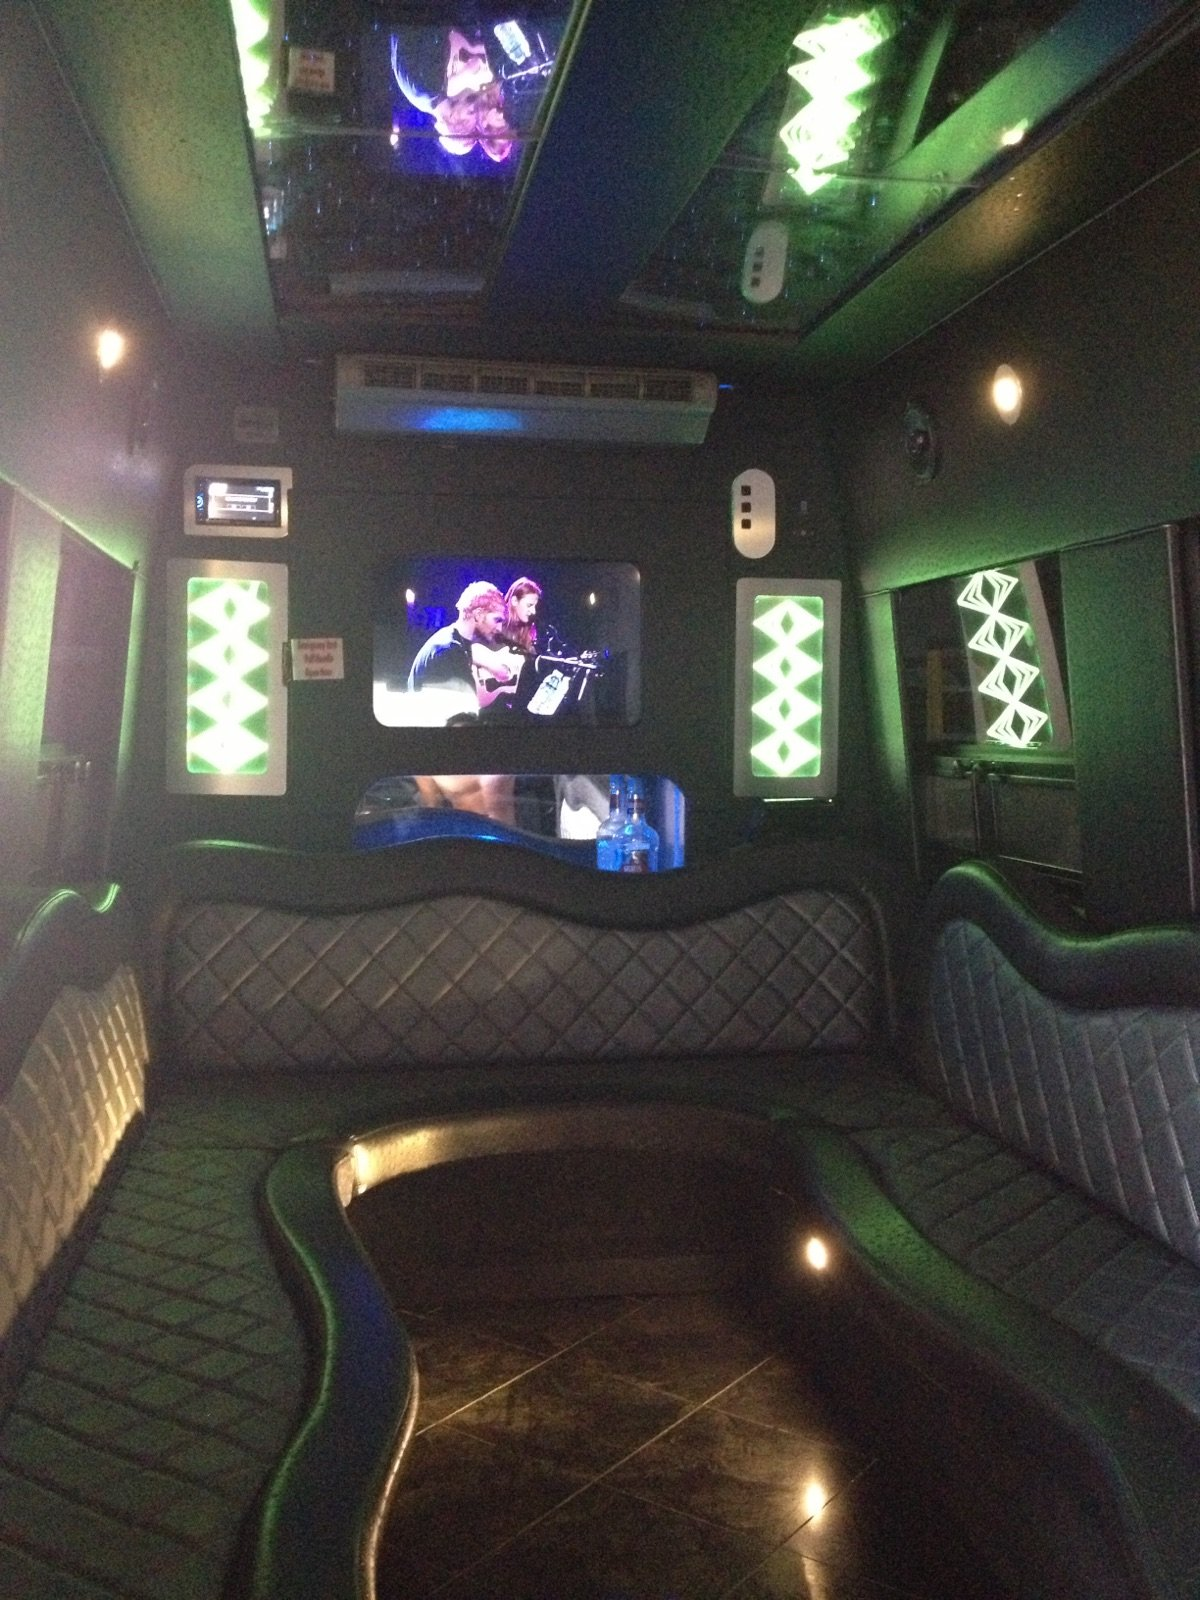 14 Pass. Mercedes limo bus